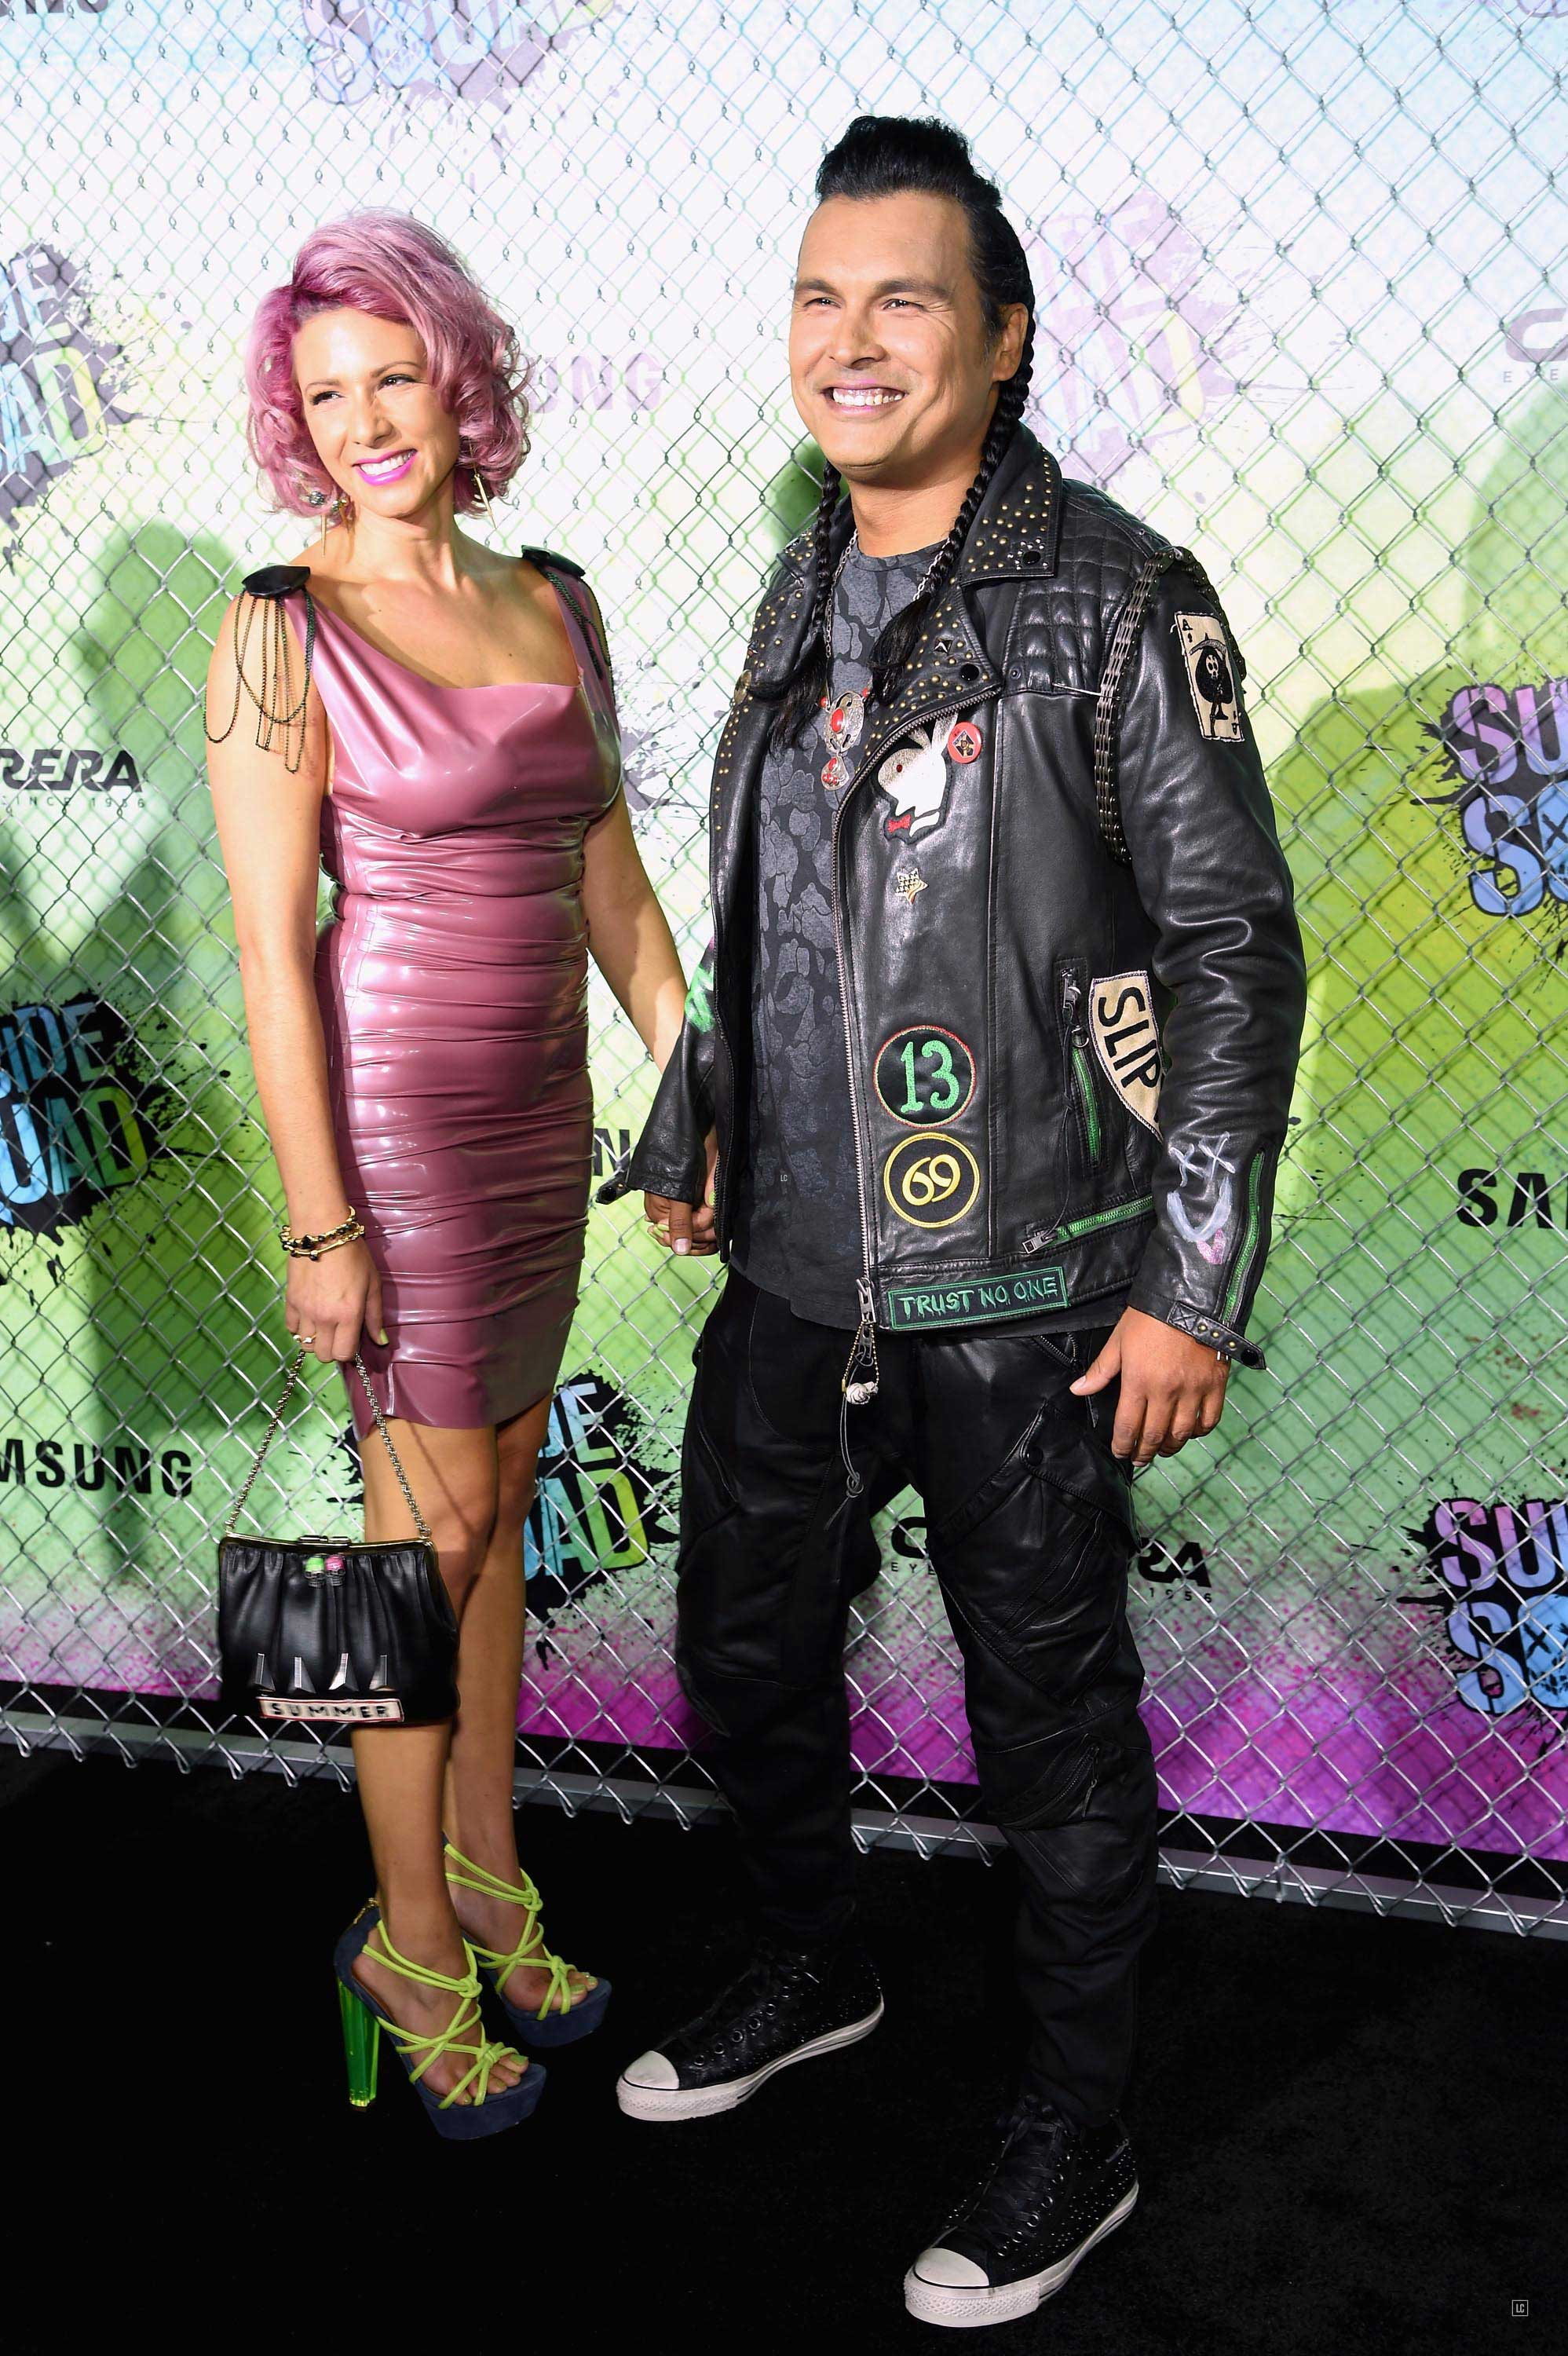 Summer Tiger attend the 'Suicide Squad' world premiere